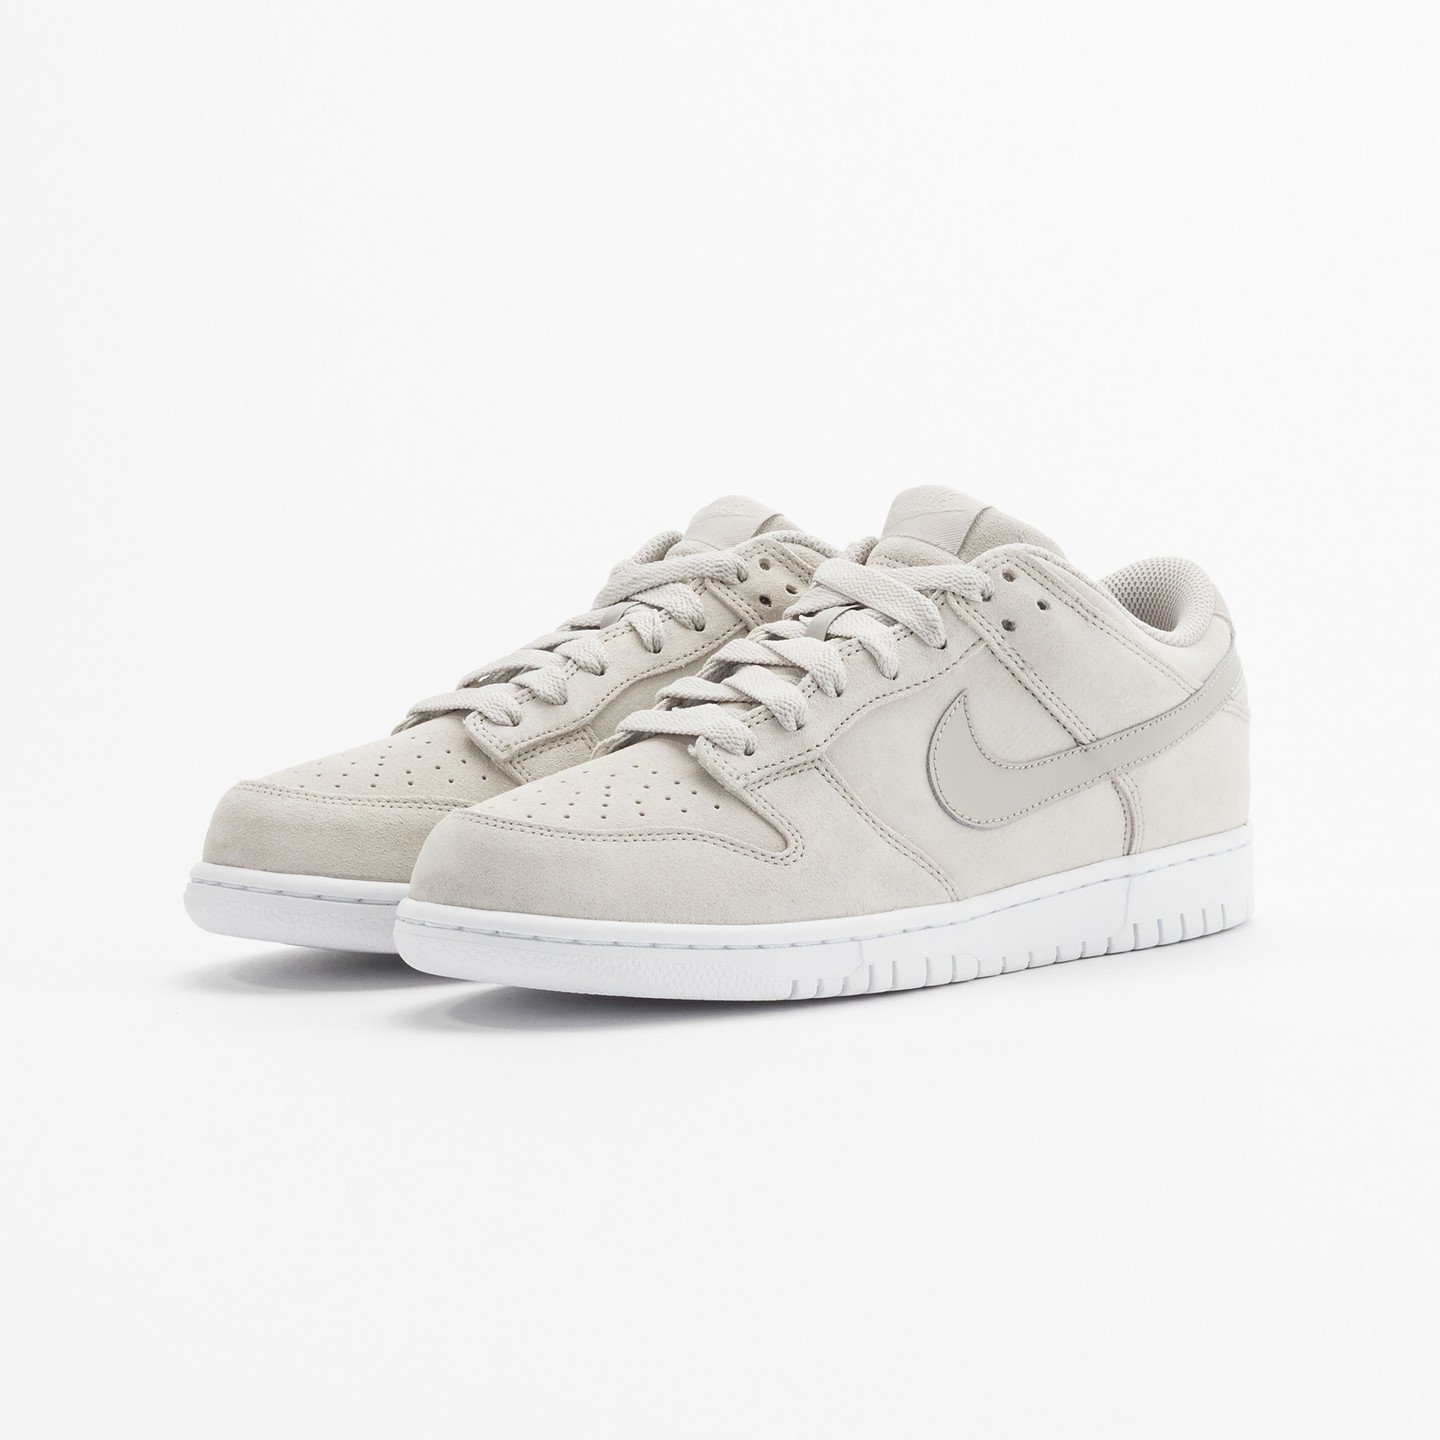 Nike Dunk Retro Low Pale Grey / White 896176-004